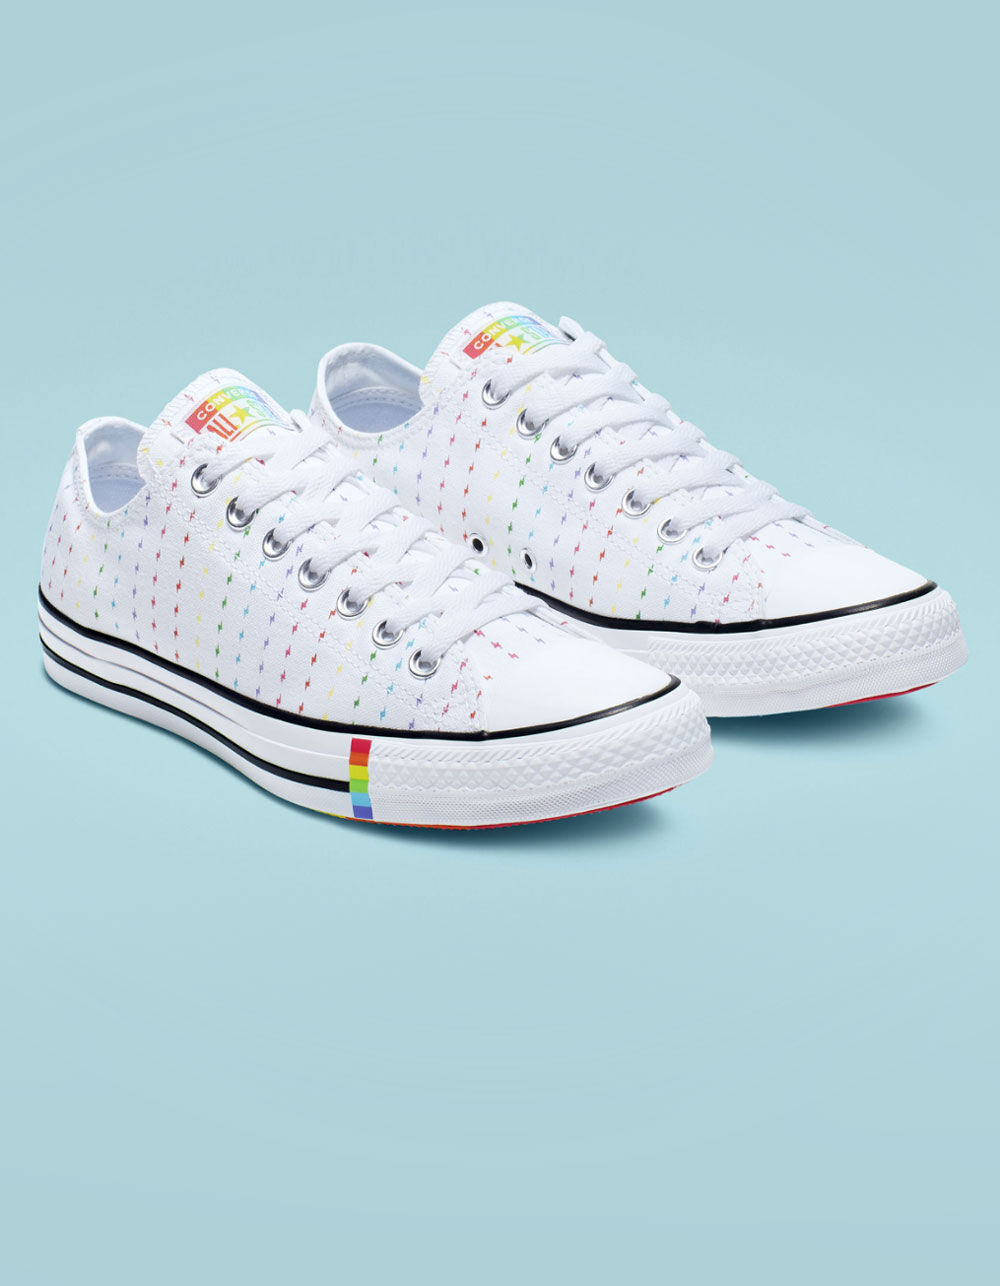 Image of CONVERSE CHUCK TAYLOR ALL STAR PRIDE WHITE LOW TOP SHOES